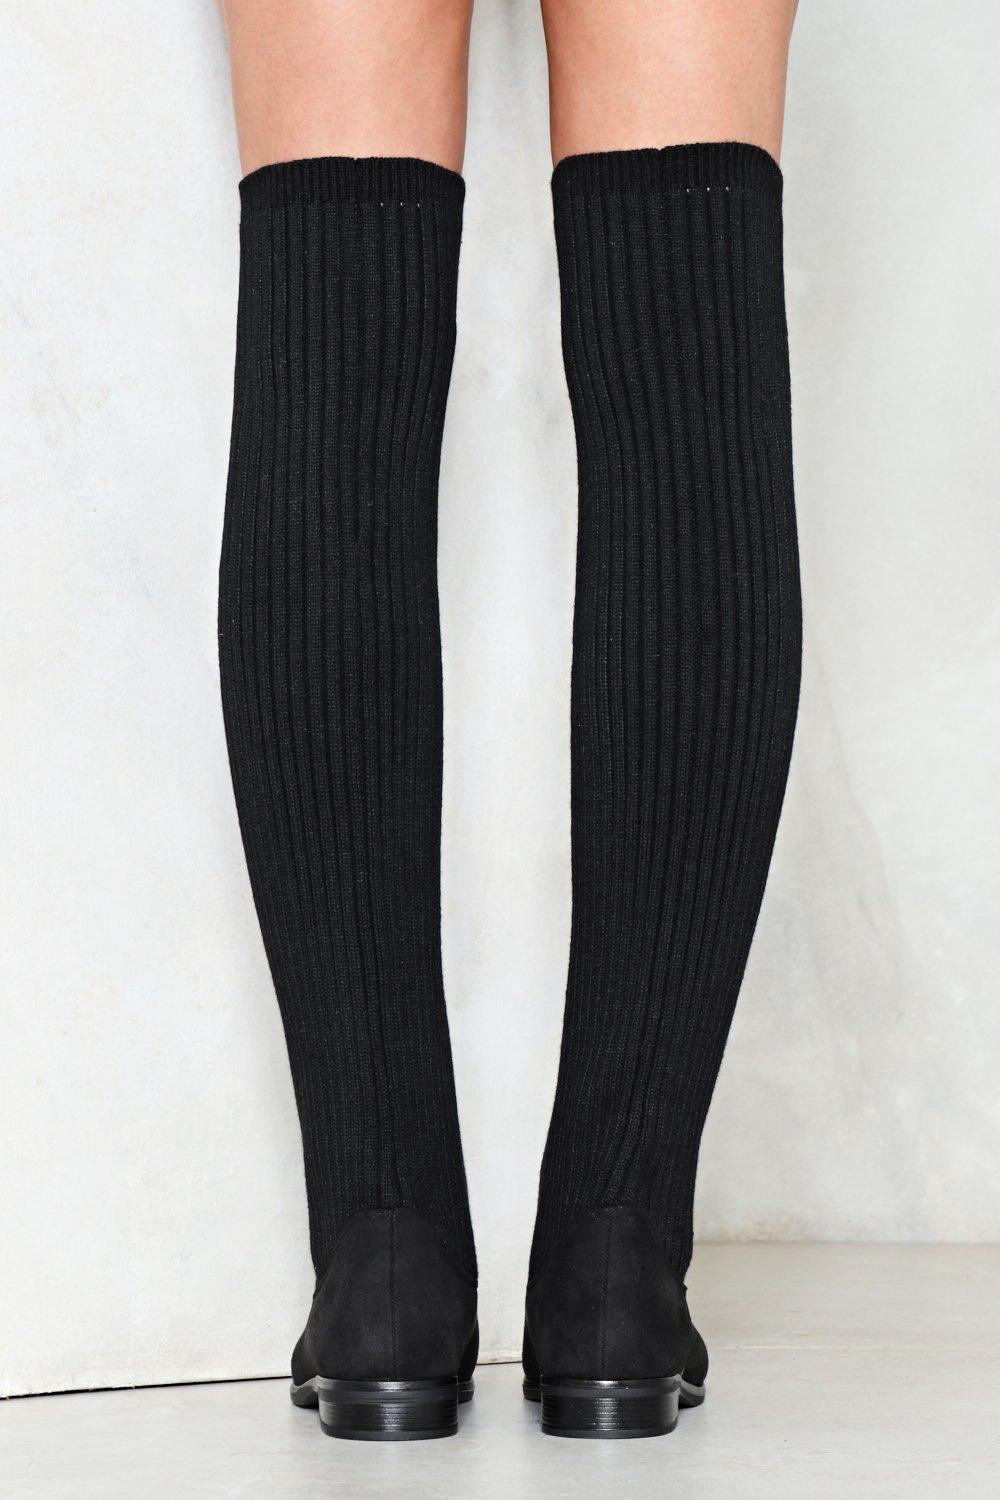 317e373f3 Womens Black Come Closer Knit Knee-High Boot. Hover to zoom